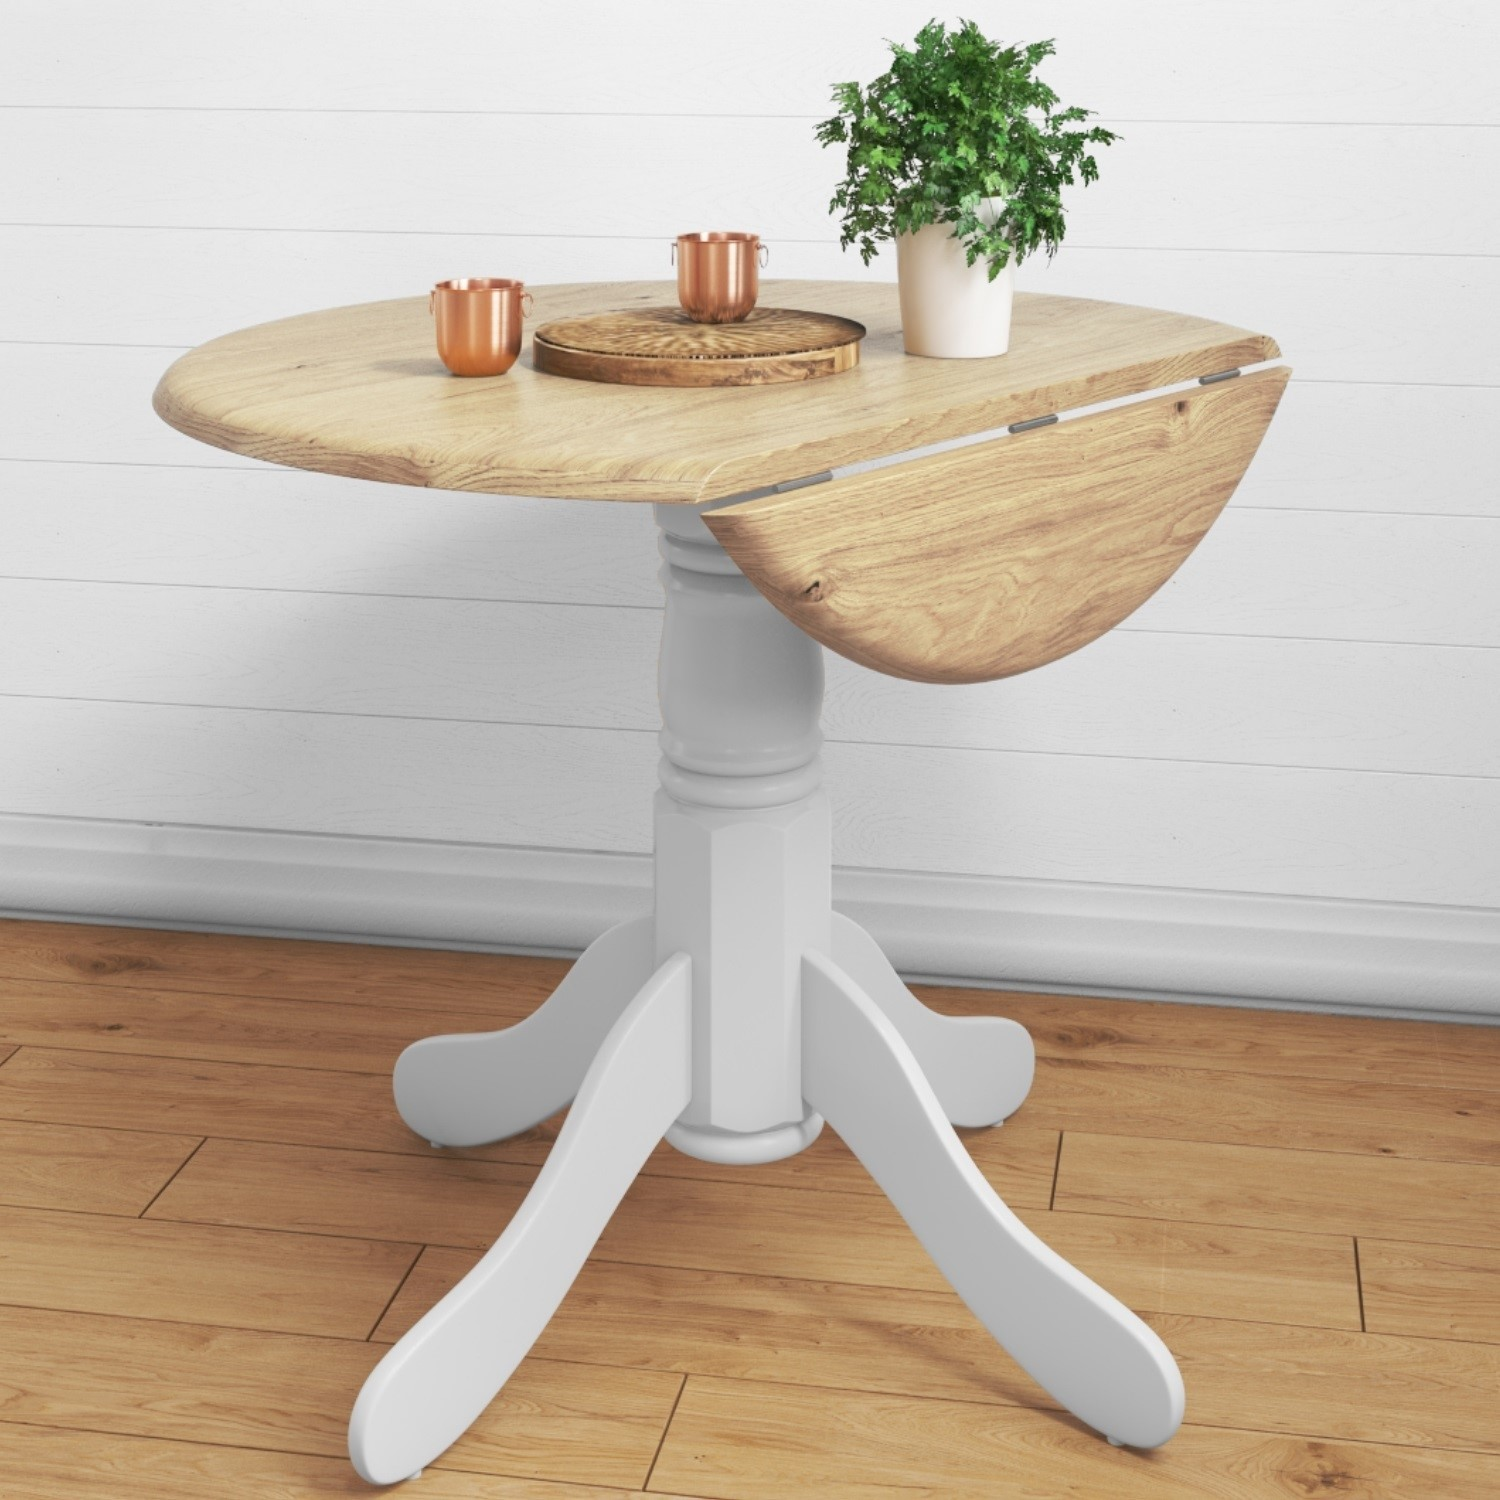 Small Round Drop Leaf Table In White Wood 2 Seater Rhode Island Furniture123